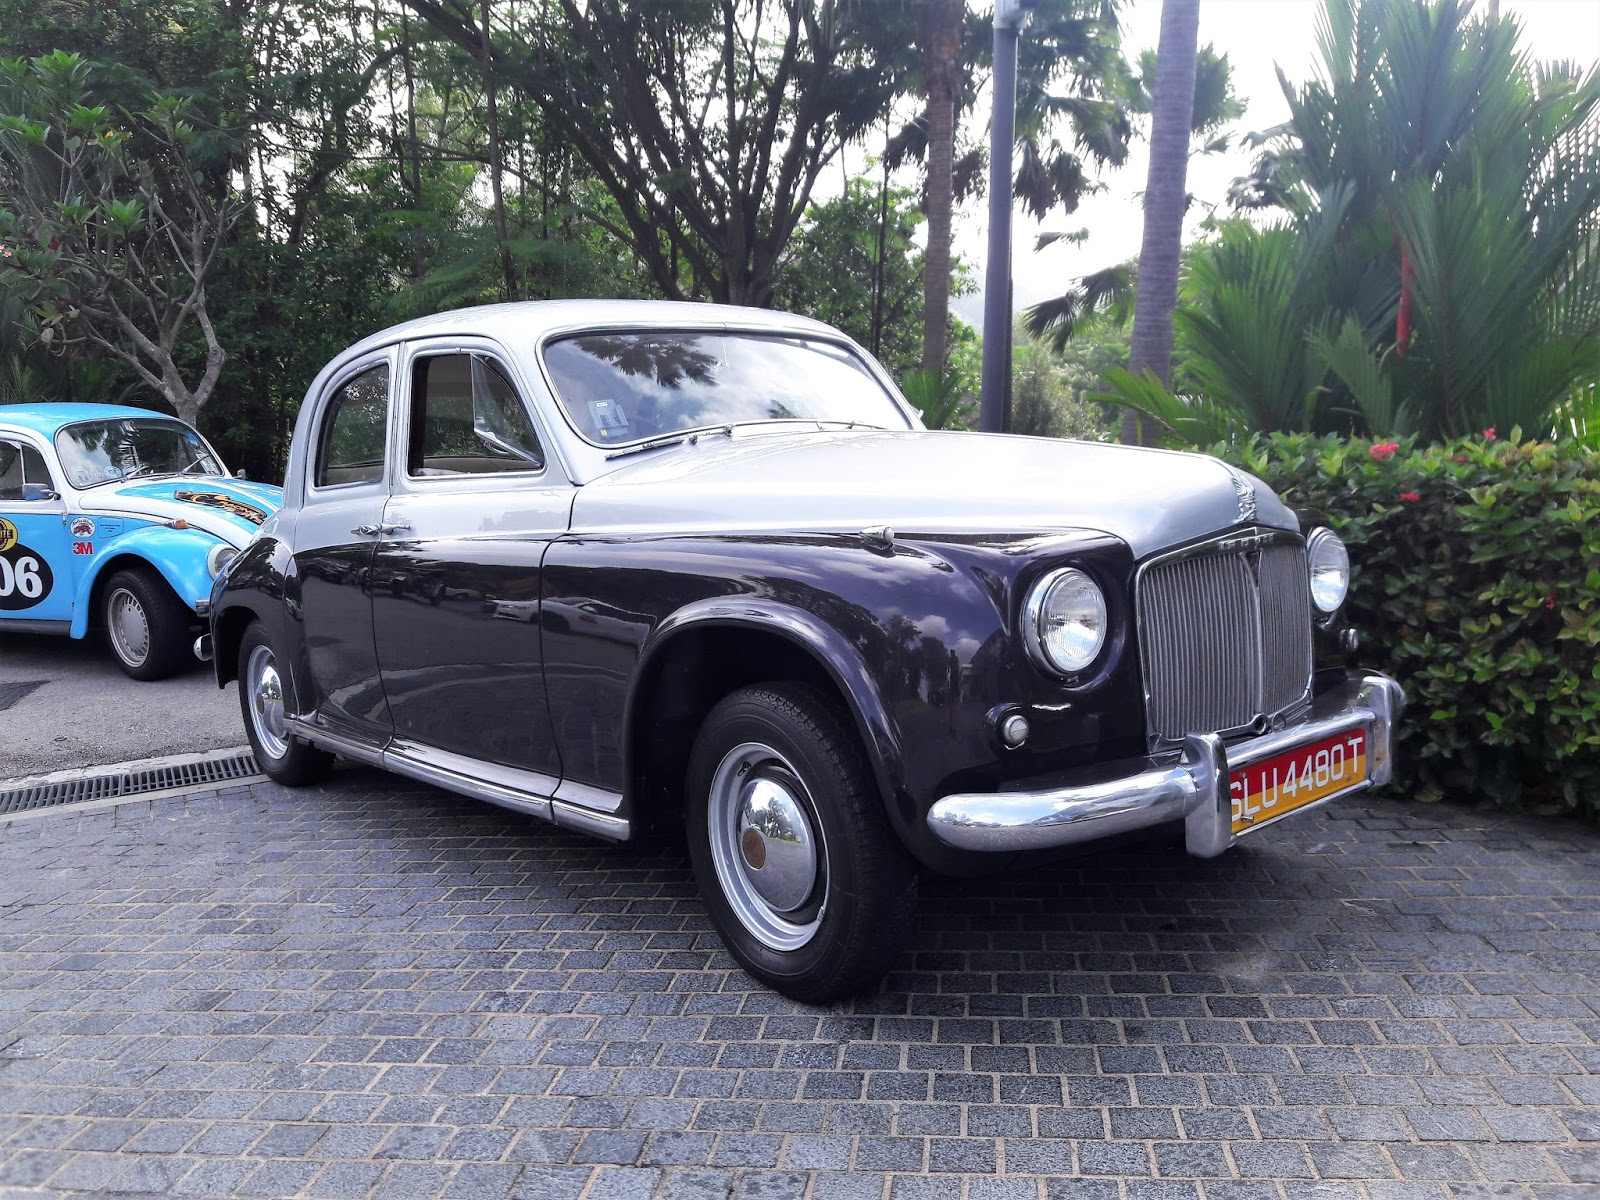 Singapore Vintage and Classic Cars: More than an old car #60: Rover ...